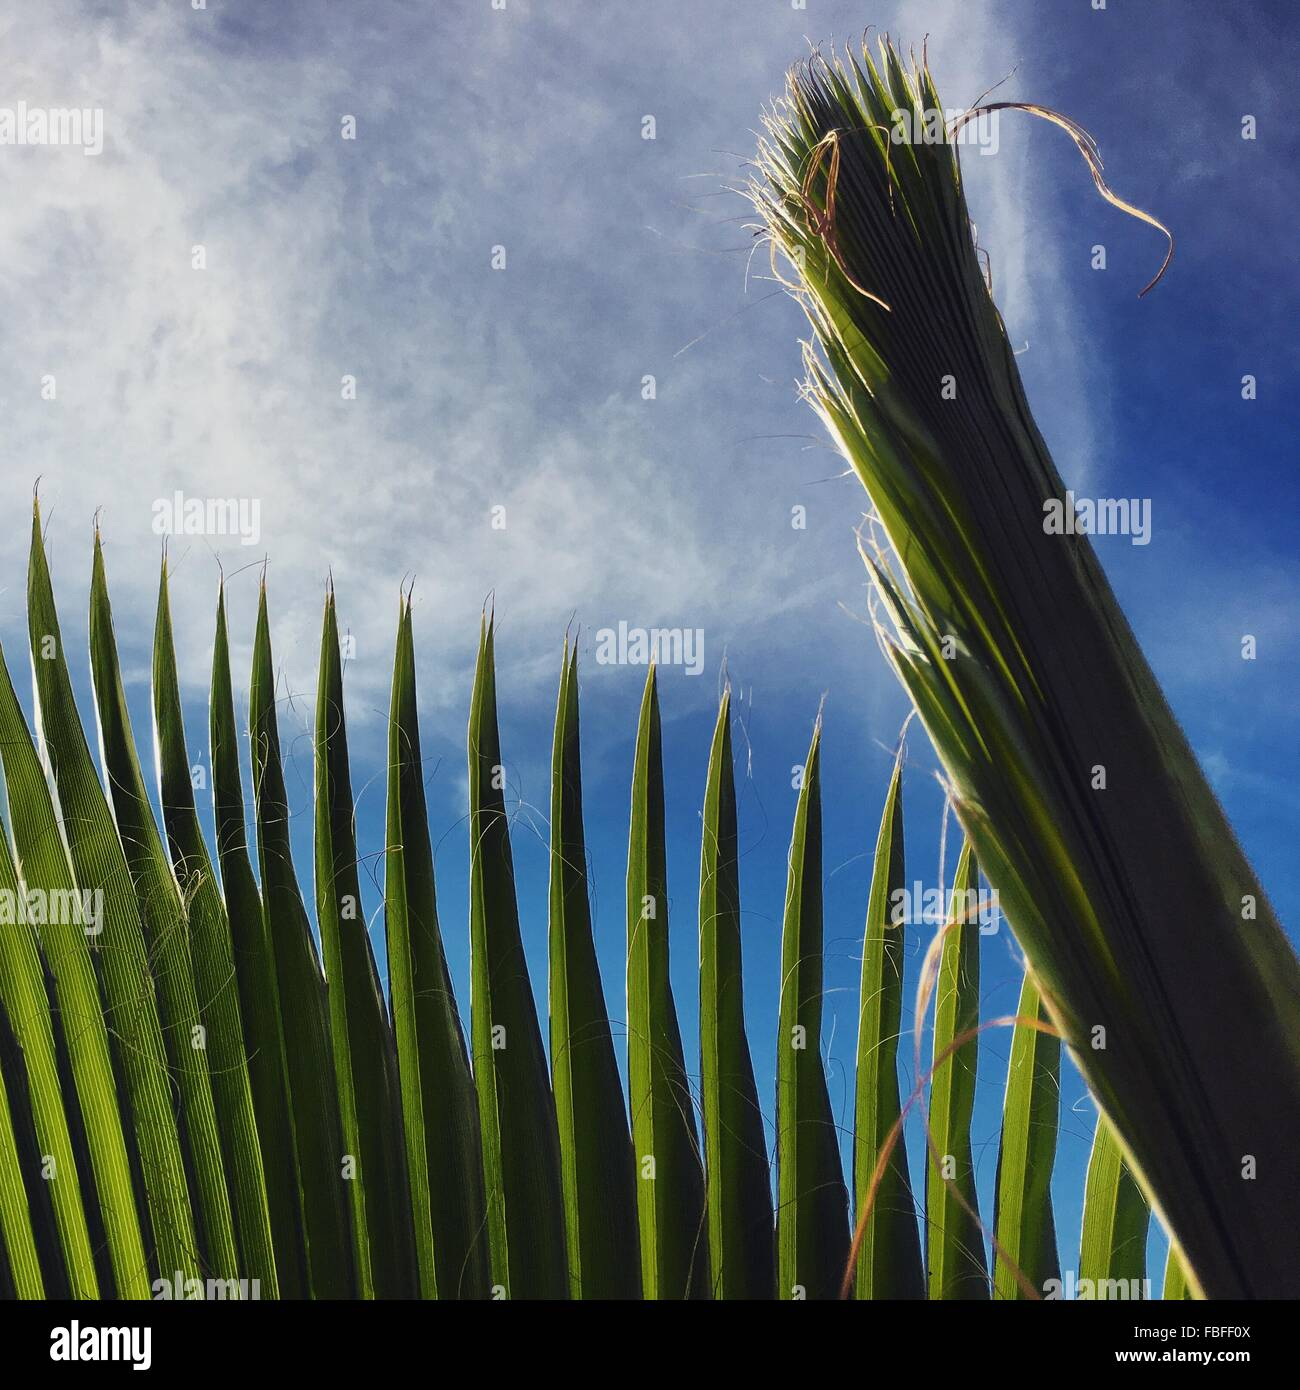 Low Angle View Of Plants Against Sky - Stock Image